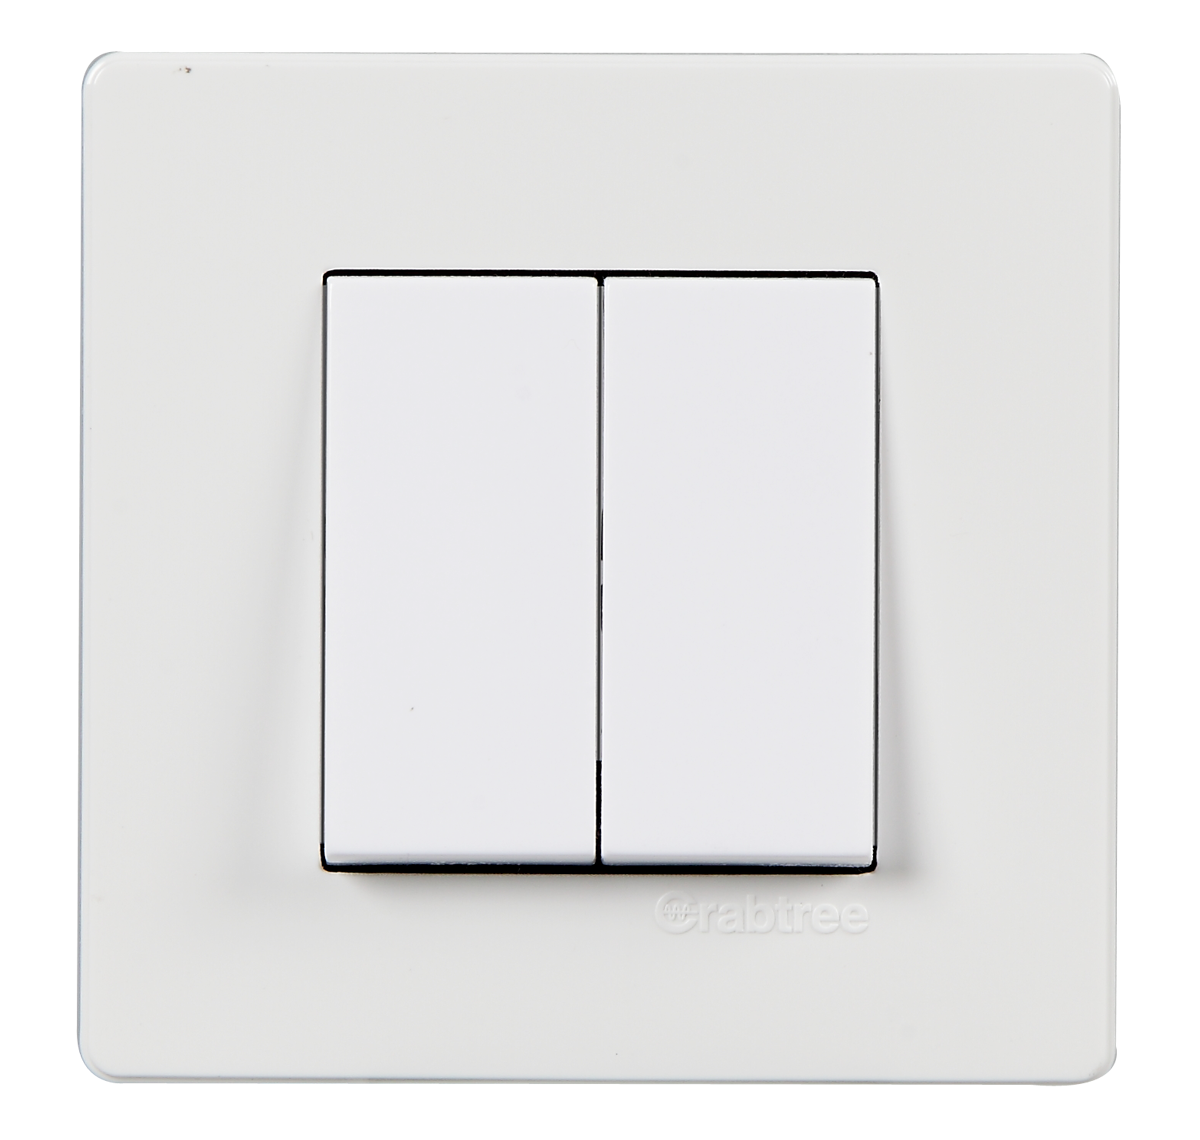 Crabtree - 2 M cover plate white